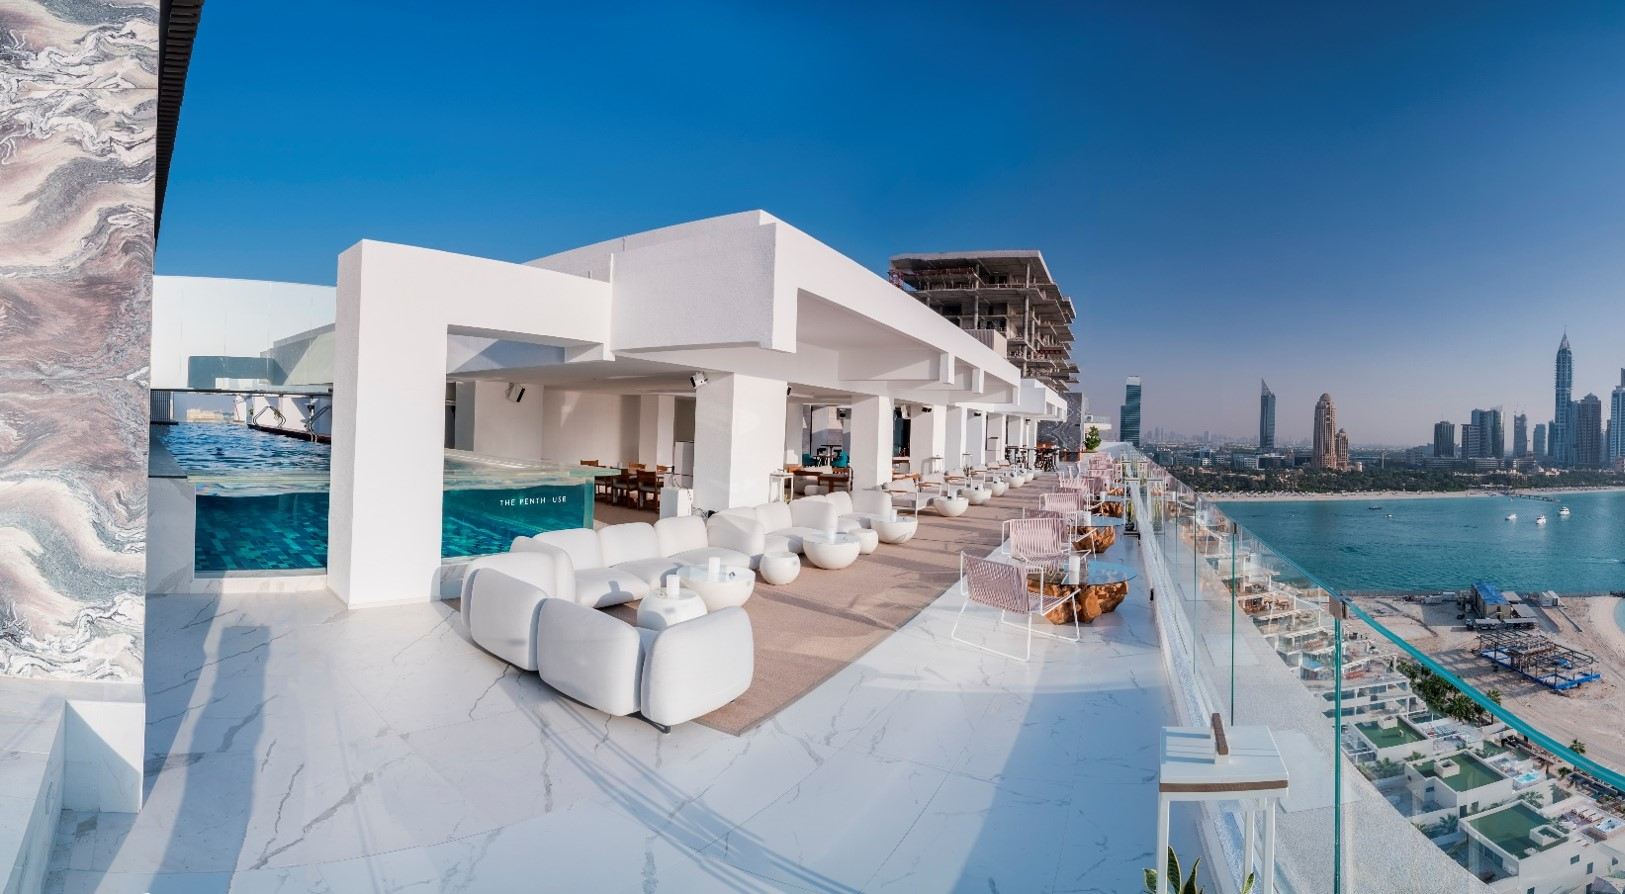 This rooftop pool bar has the best views of Dubai